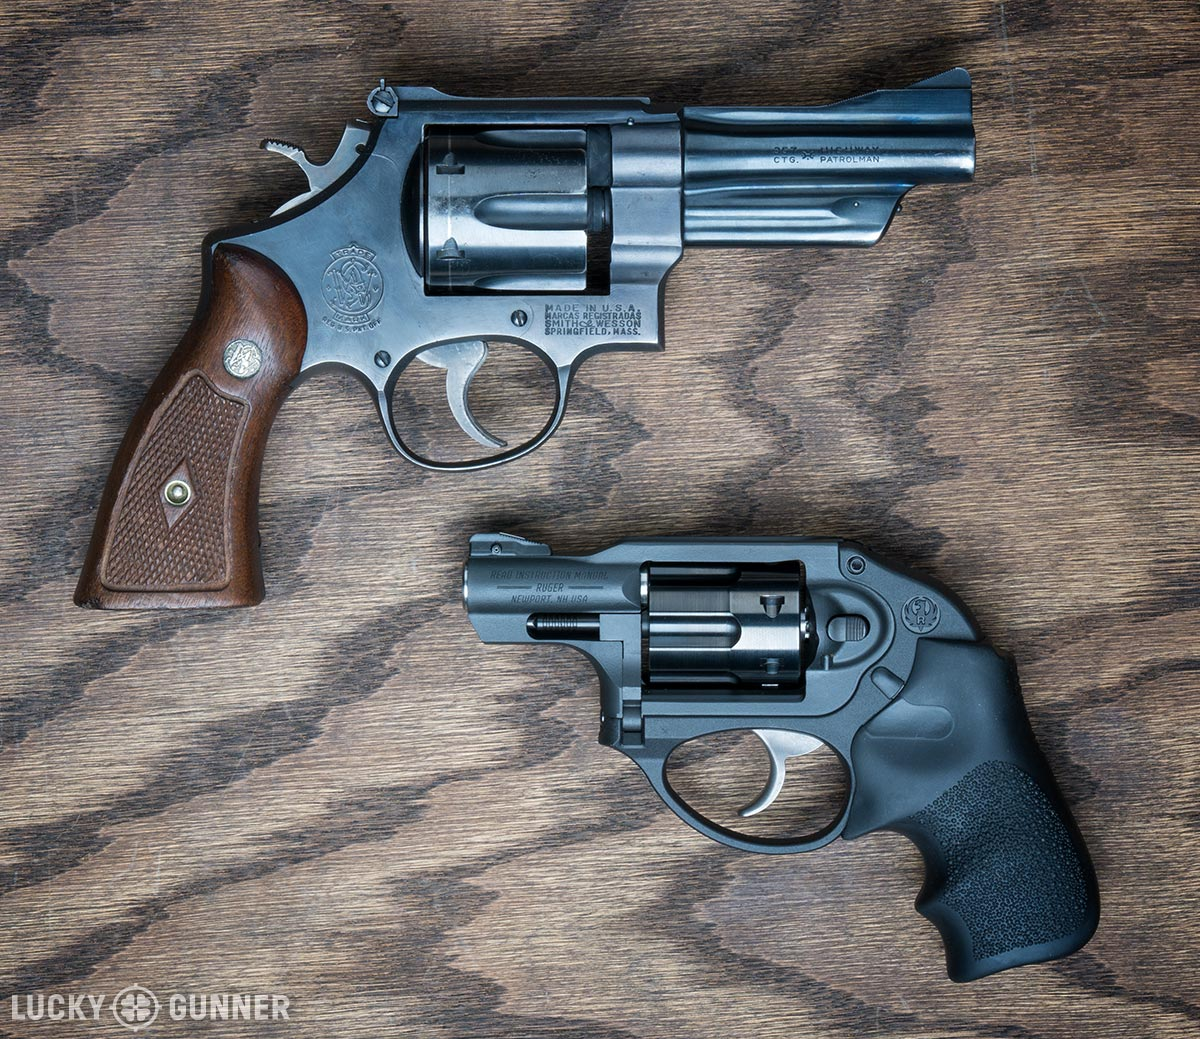 S&W Model 27 and Ruger LCR